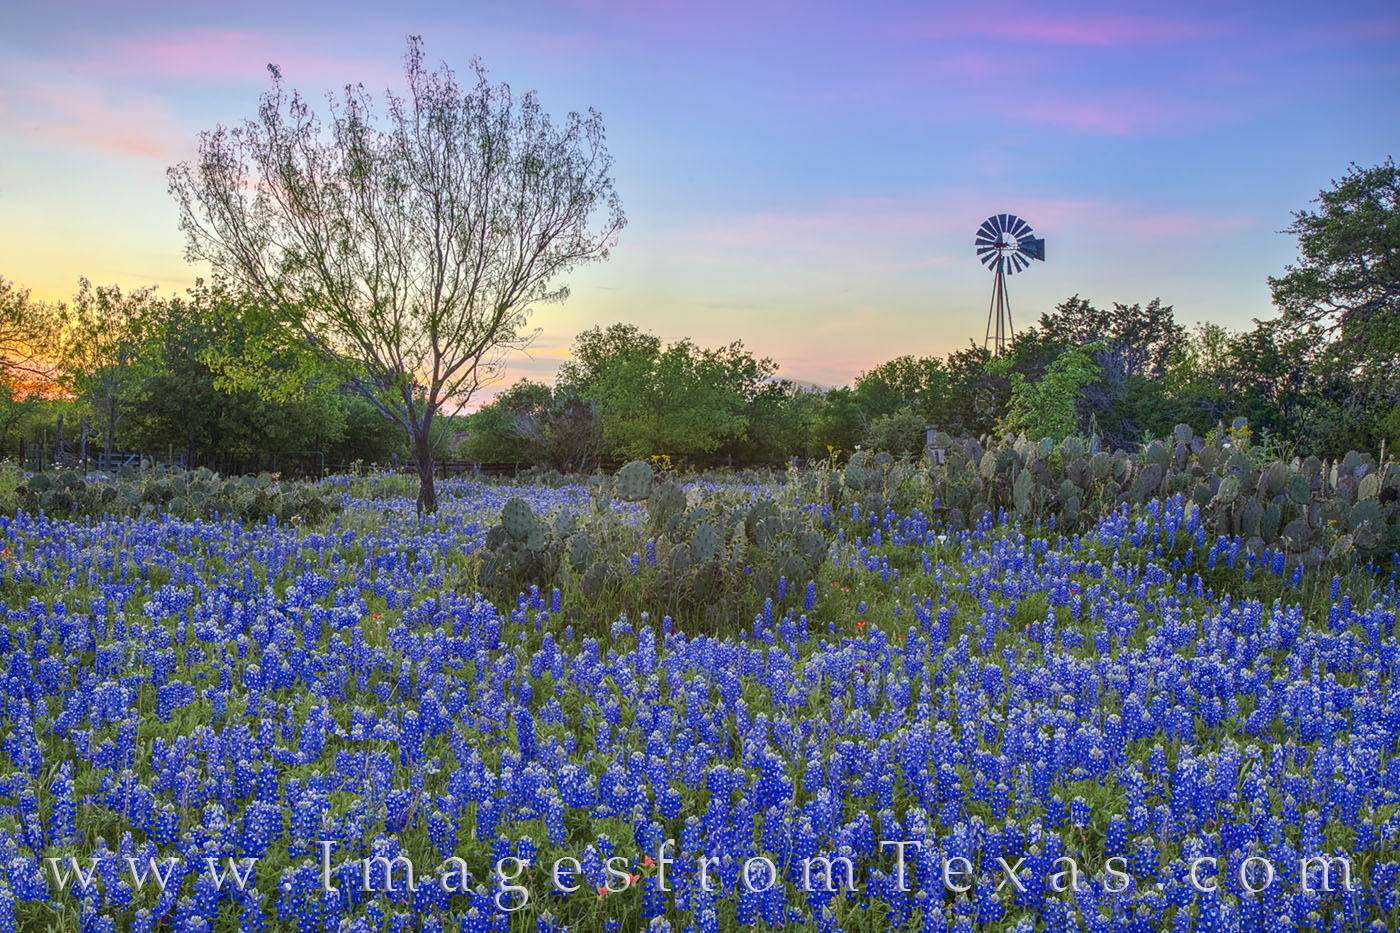 The sky turned soft pastel colors of pink and blue and orange in this sunset photograph of bluebonnets and a windmill. A friend...